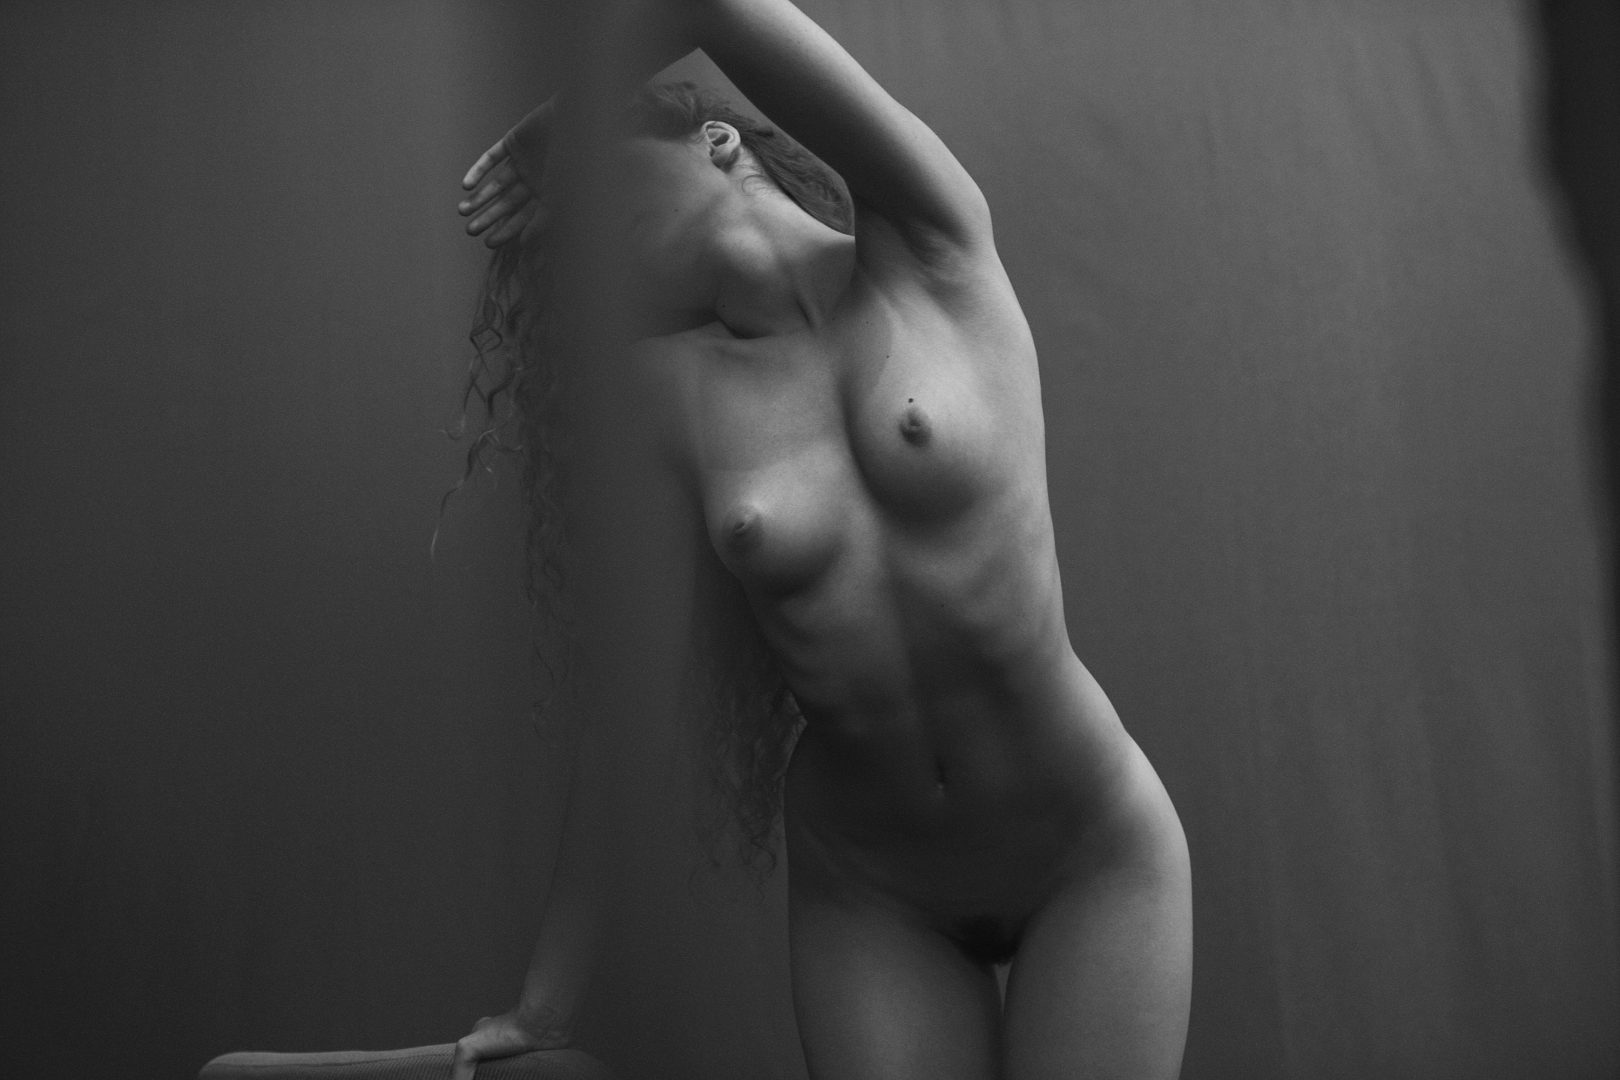 Naked girl in a studio by Stefan Rappo